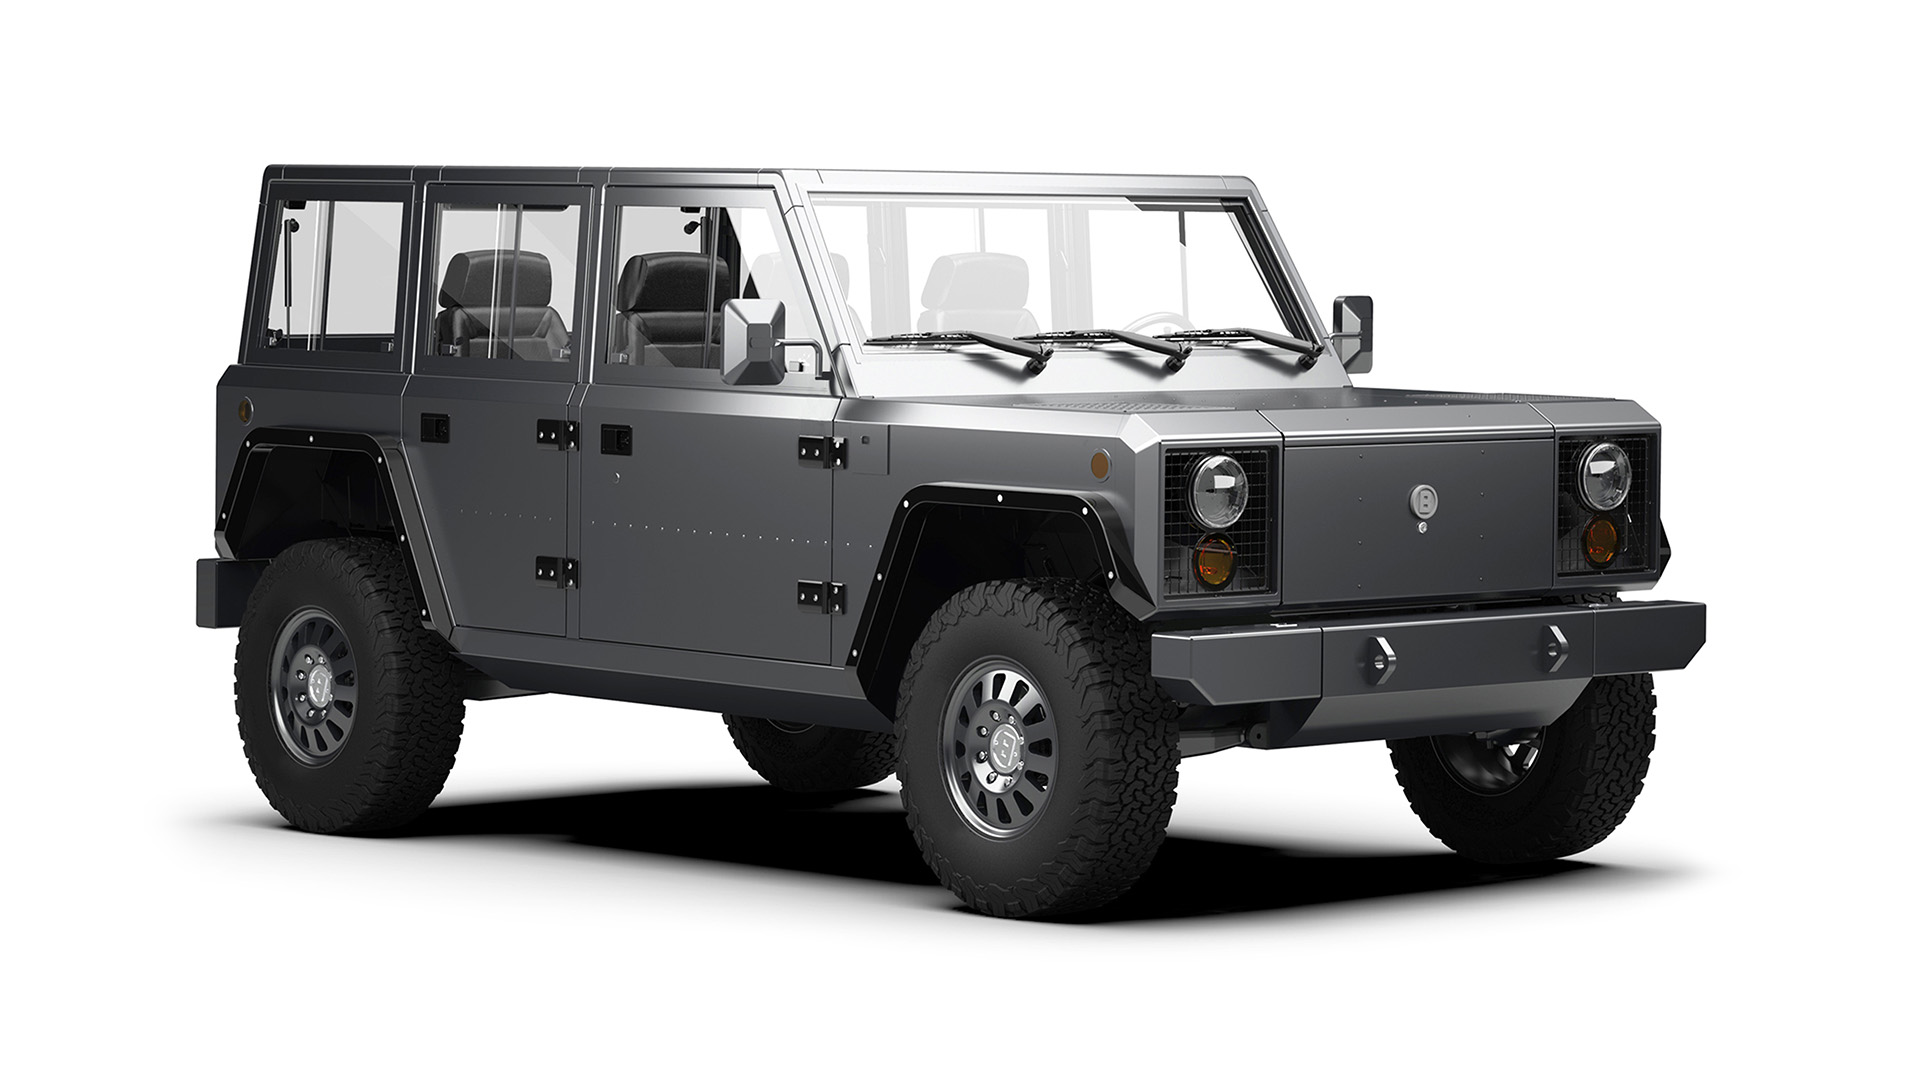 Budding U.S. car manufacturer Bollinger Motors has revealed the release schedule for its B1 SUV and B2 pickup truck. Both all-electric vehicles will celebrate their international premiere on September 26 and enter production in summer 2020.